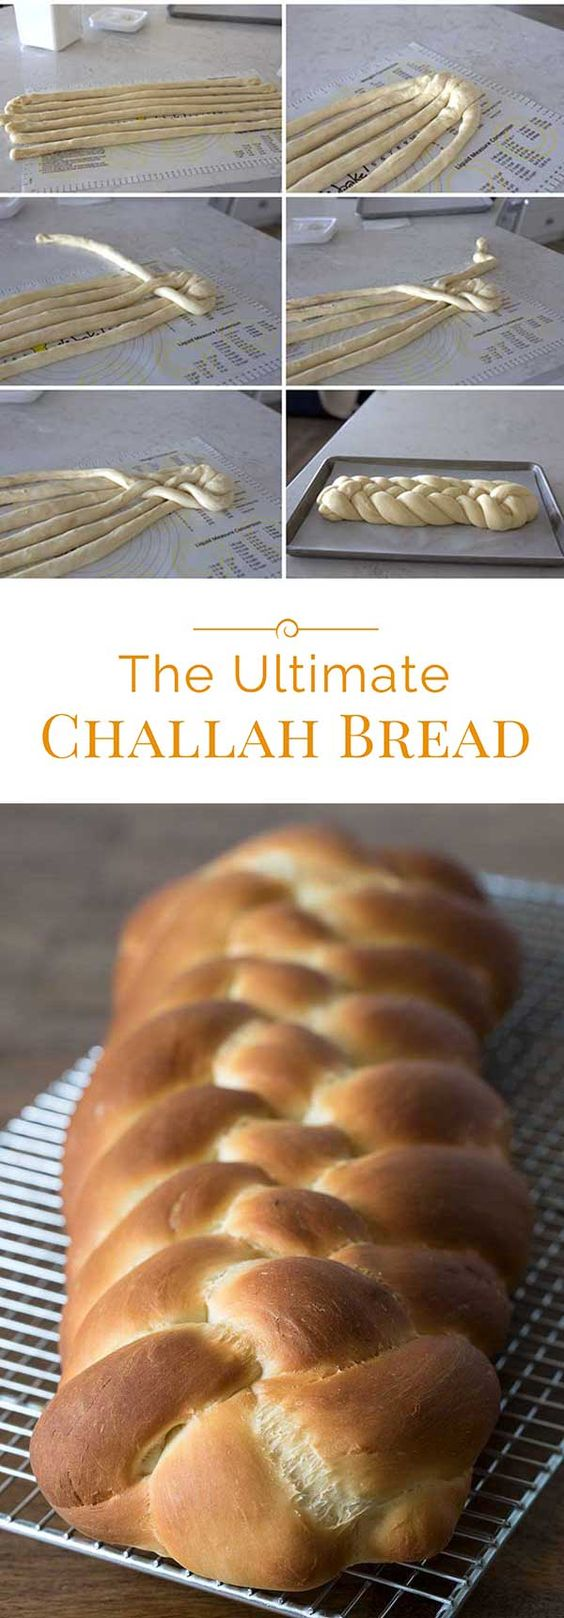 The Ultimate Challah Bread